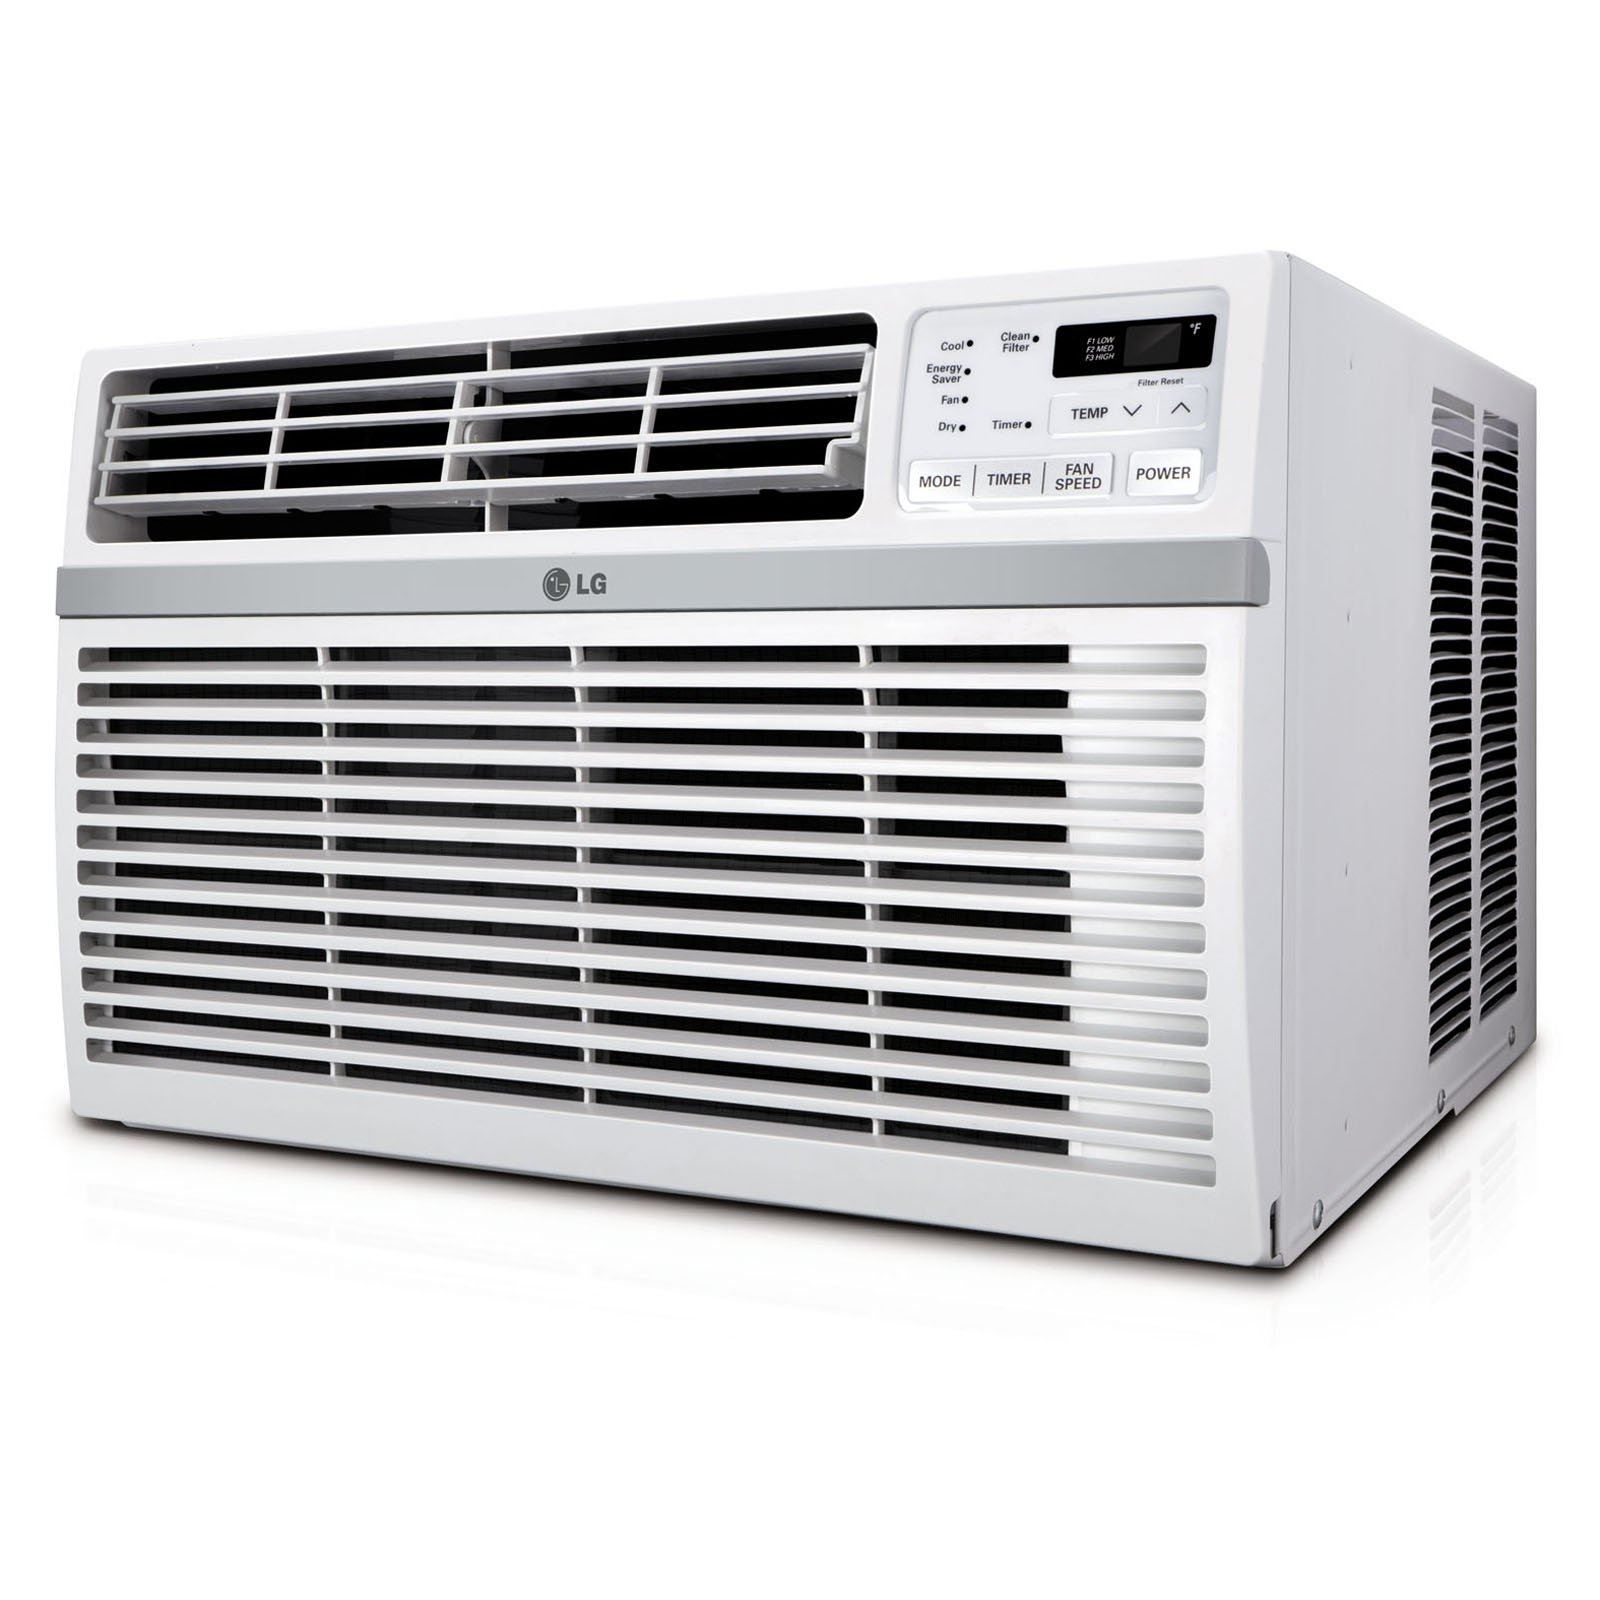 LG 18,000 BTU 230V Window-Mounted Air Conditioner with Remote Control